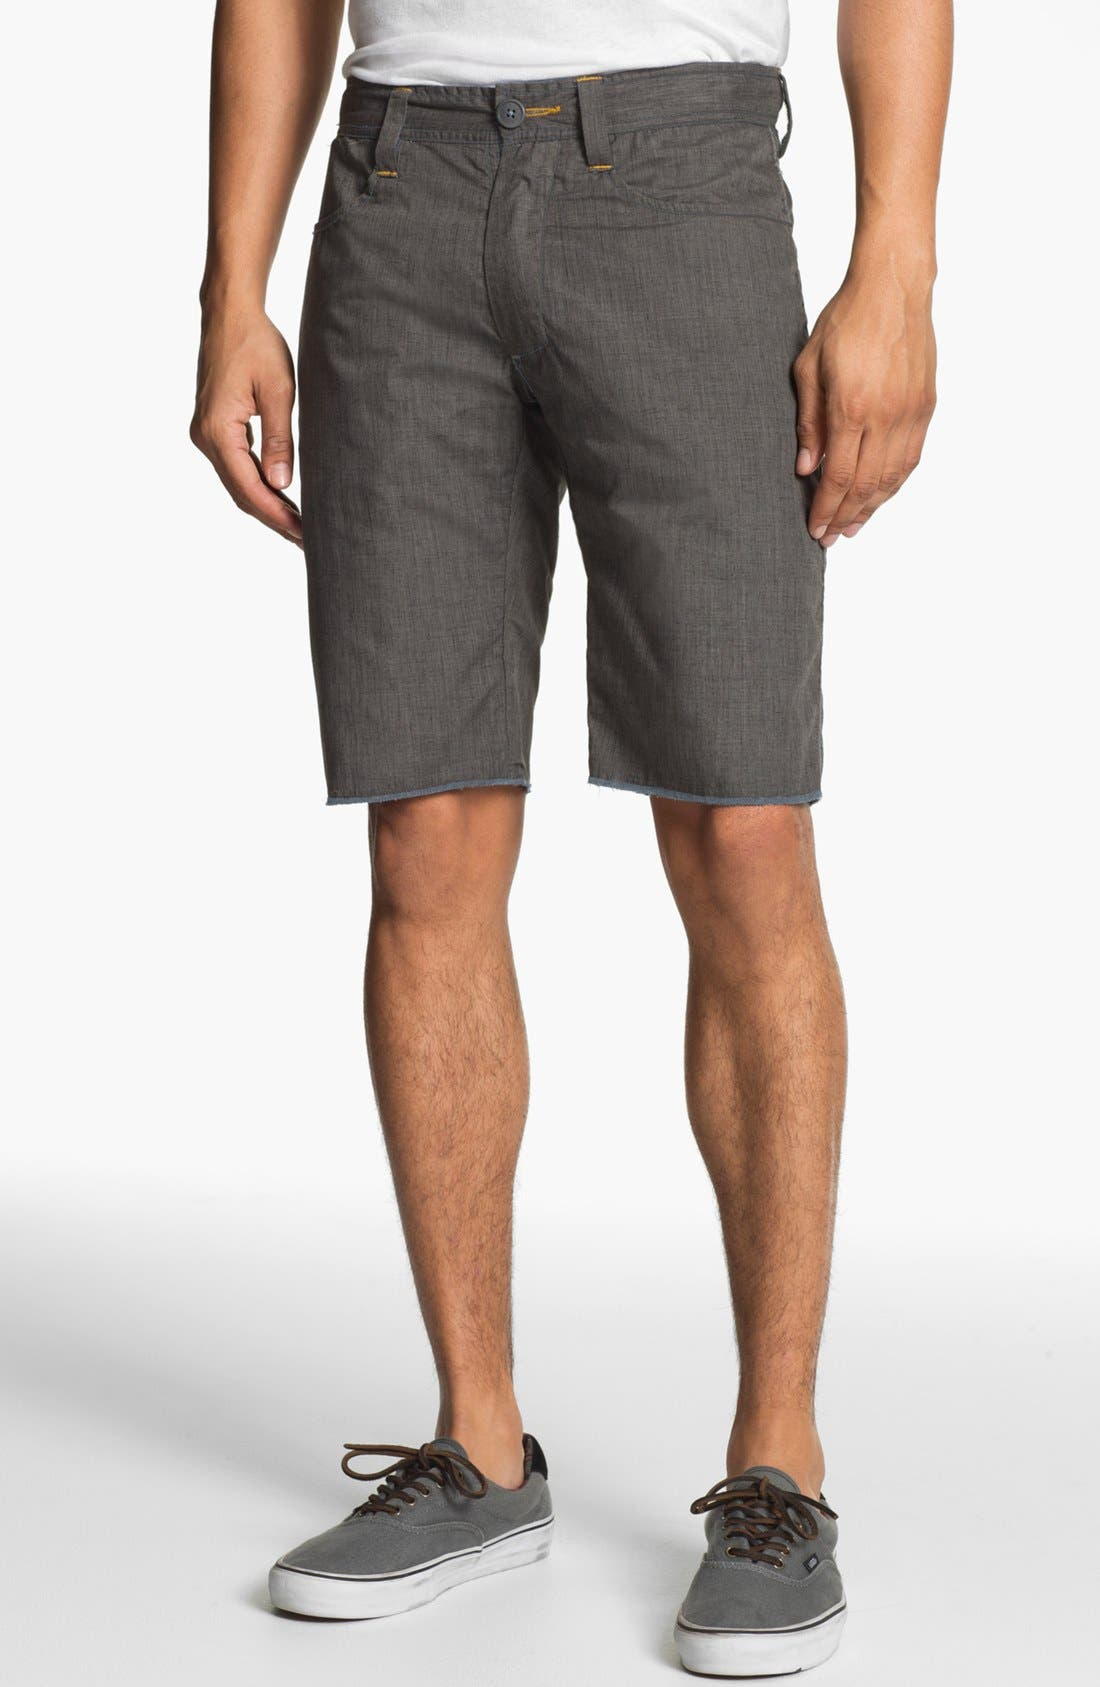 Alternate Image 1 Selected - Howe 'Hands Down' Reversible Shorts